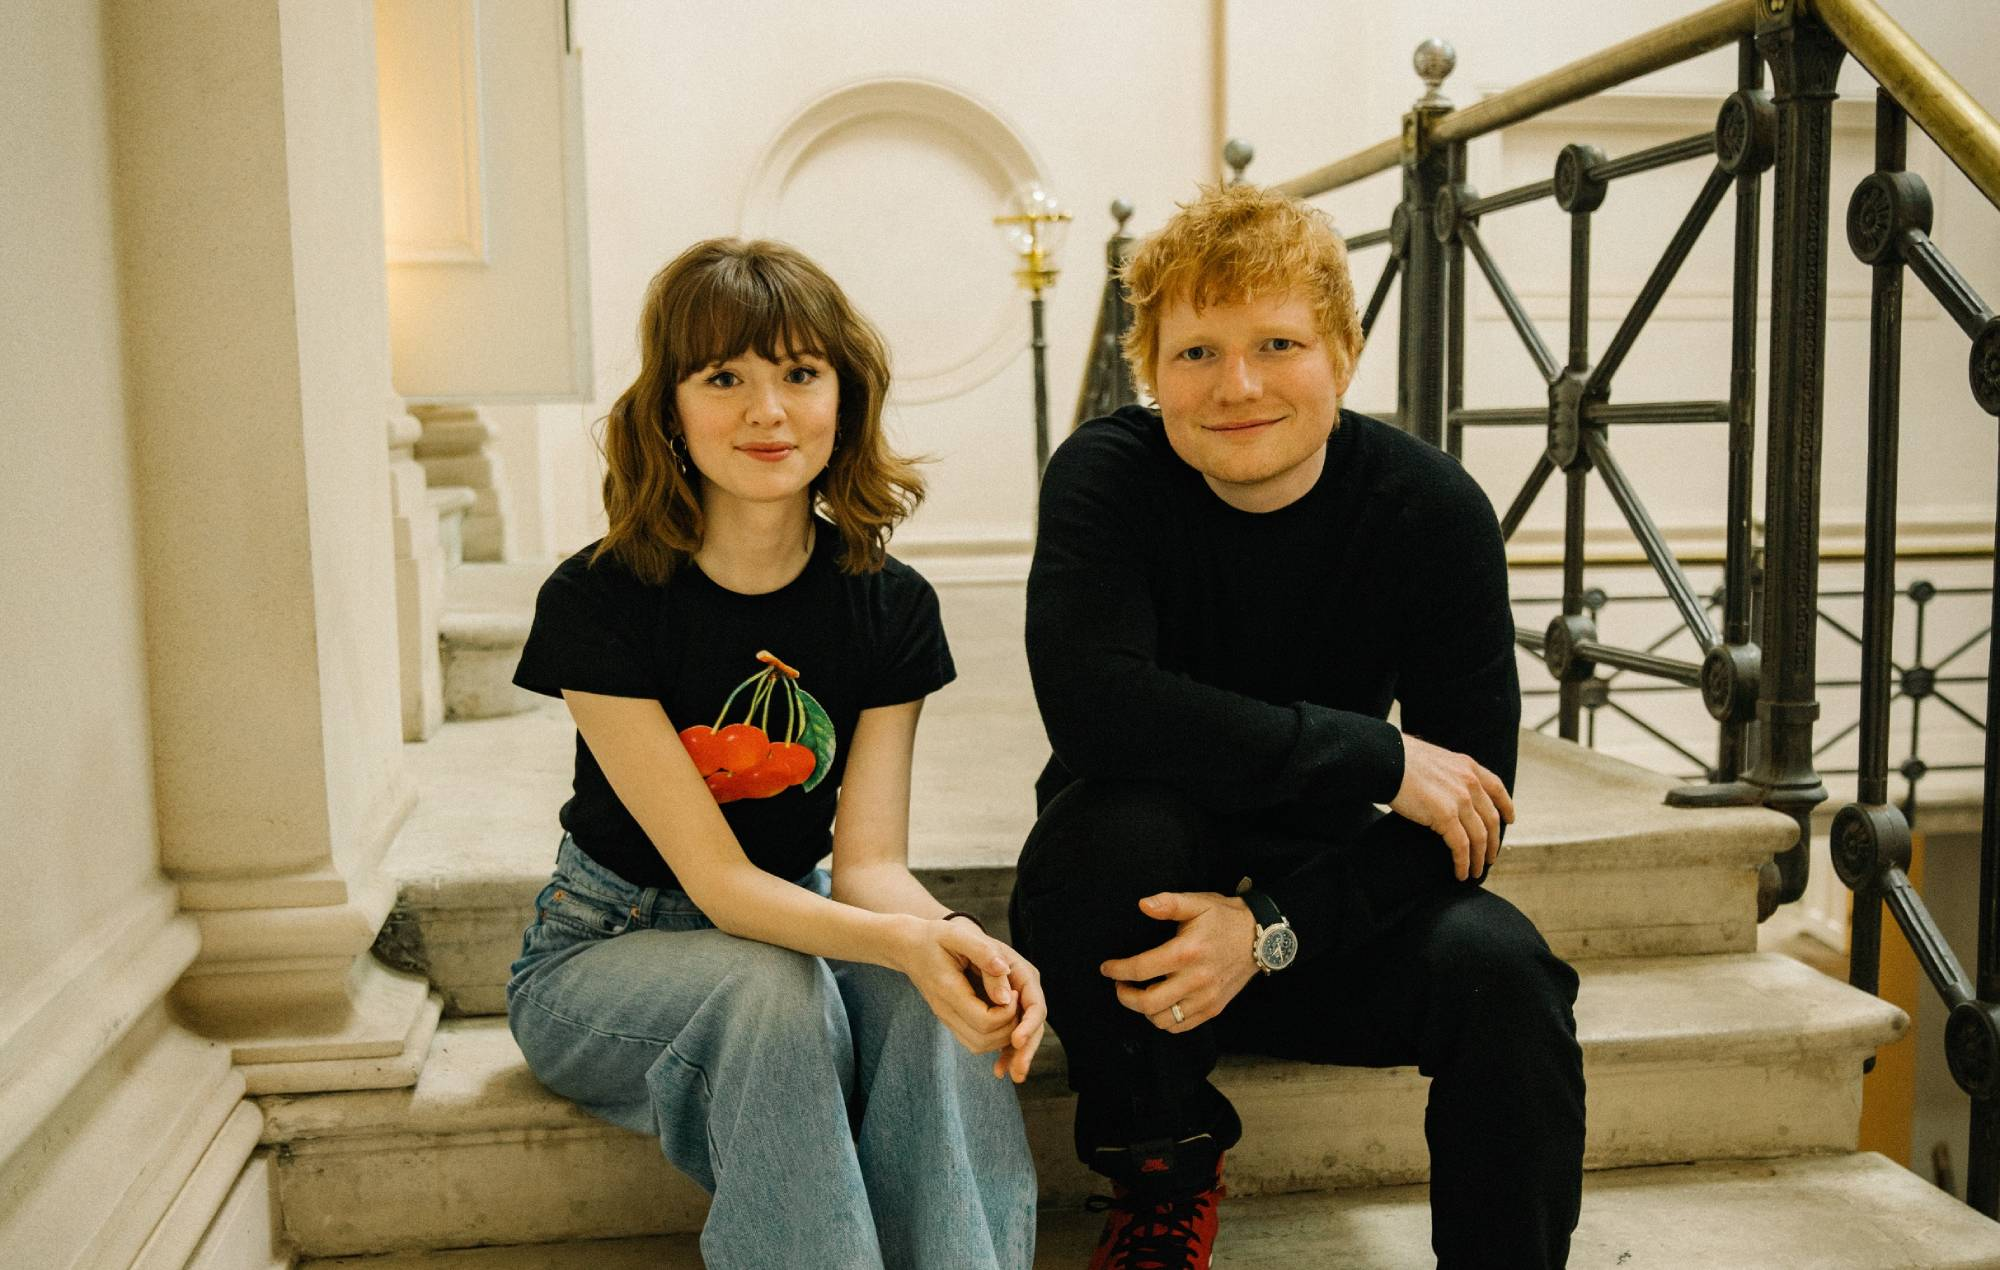 Maisie Peters signs to Ed Sheeran's record label and announces debut album